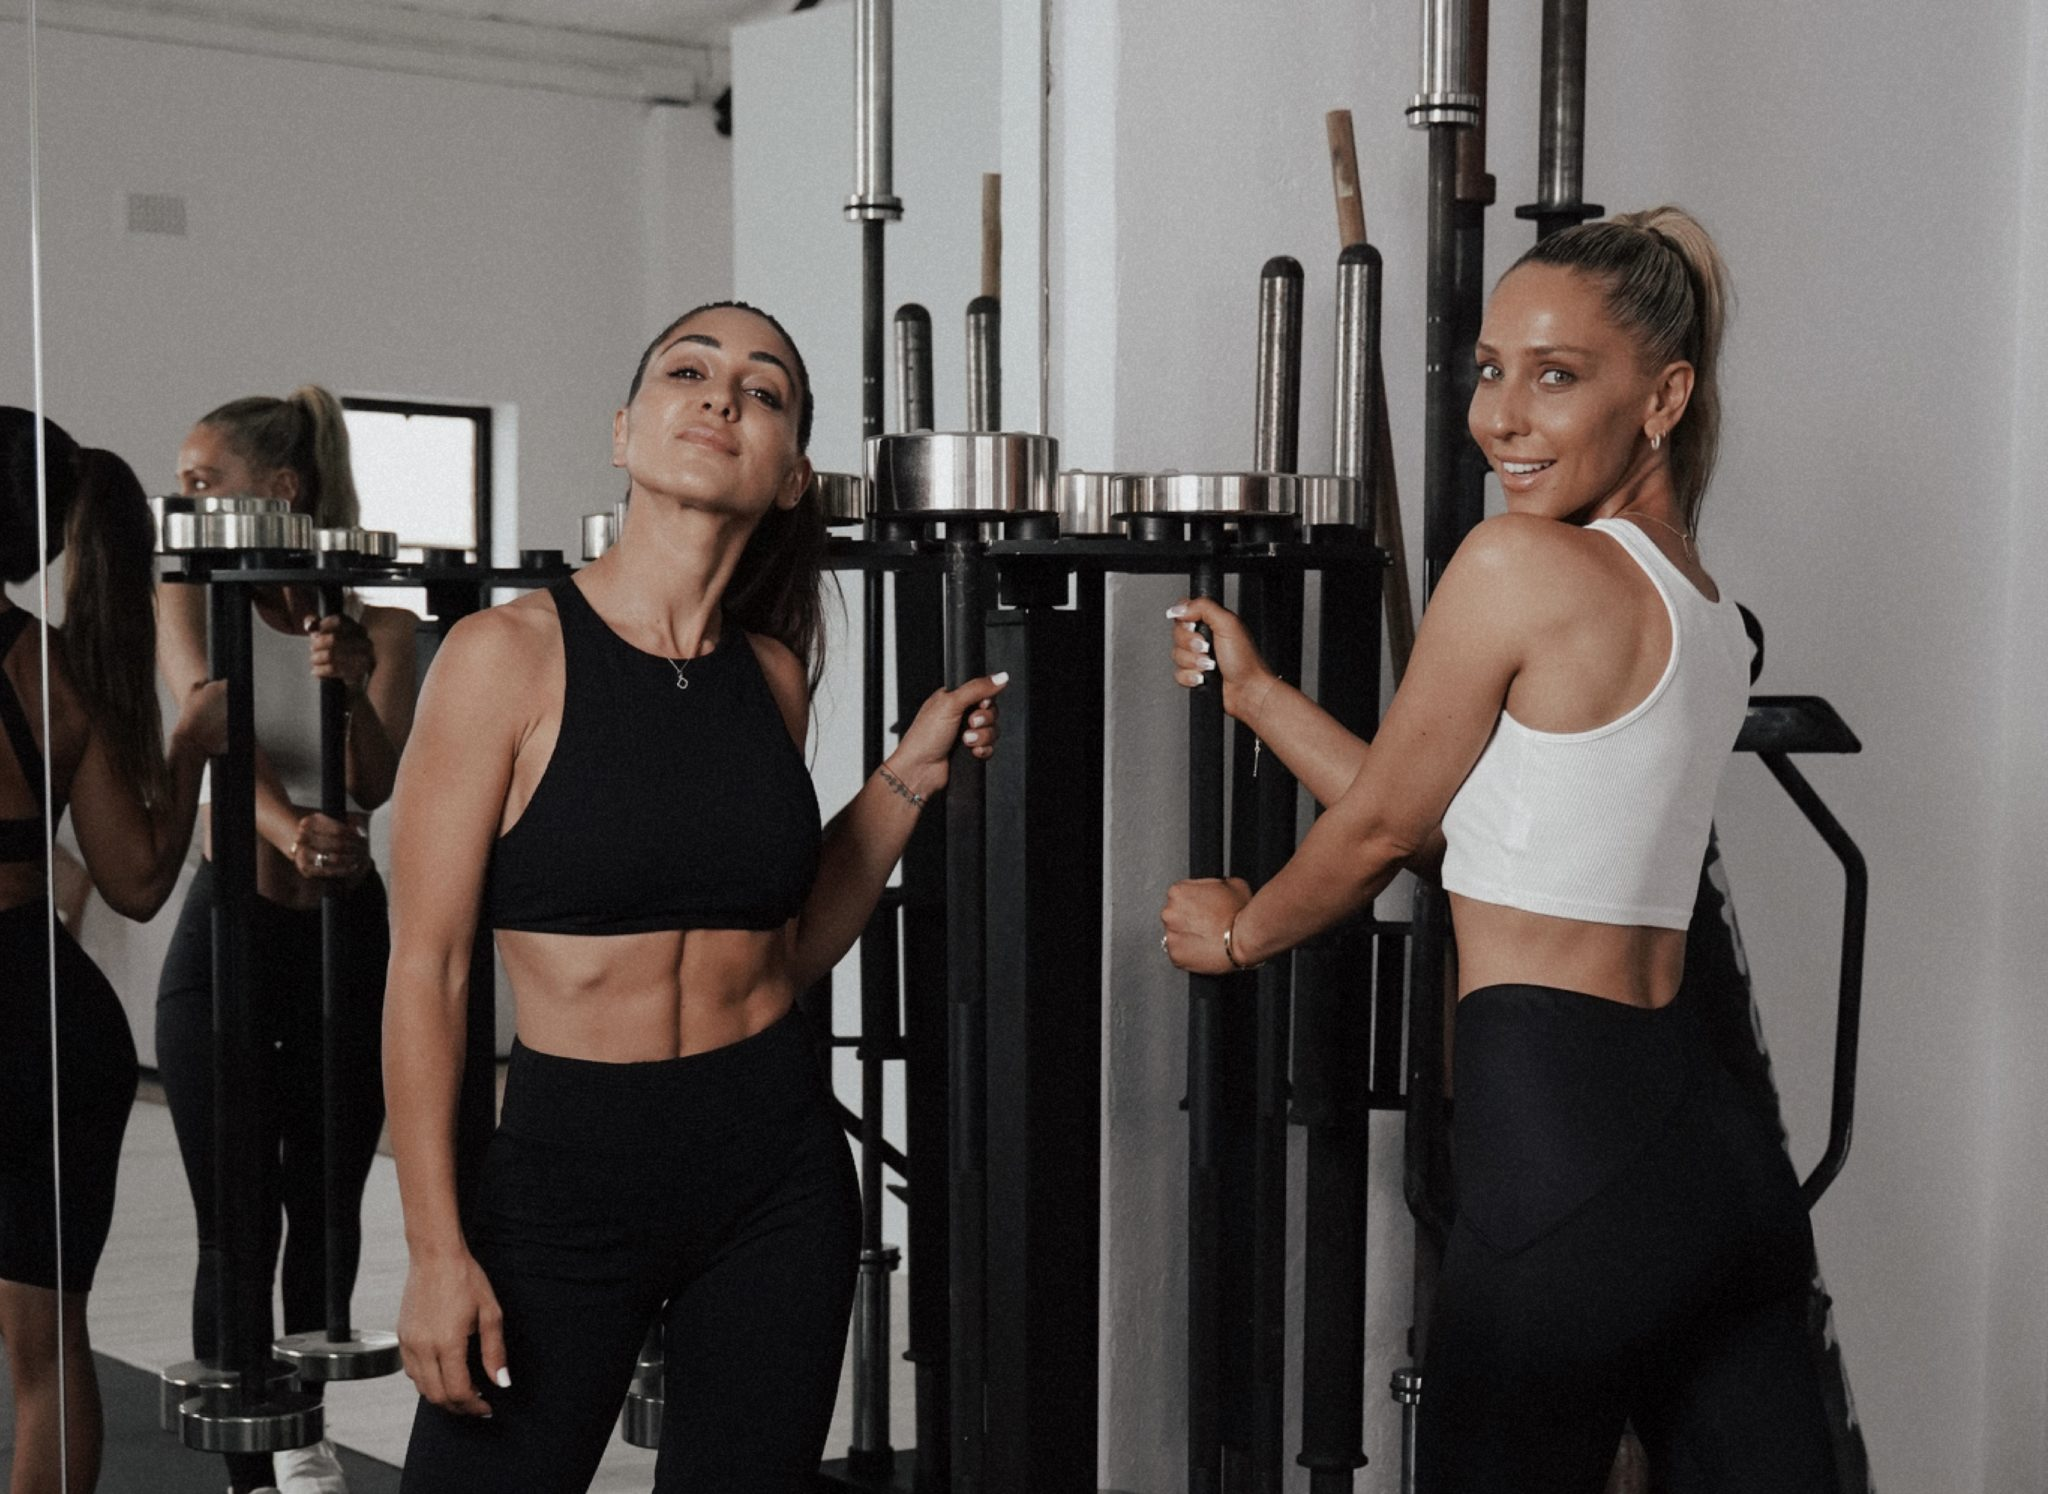 Weights for Women Part 4: Training lingo you need to know when lifting weights